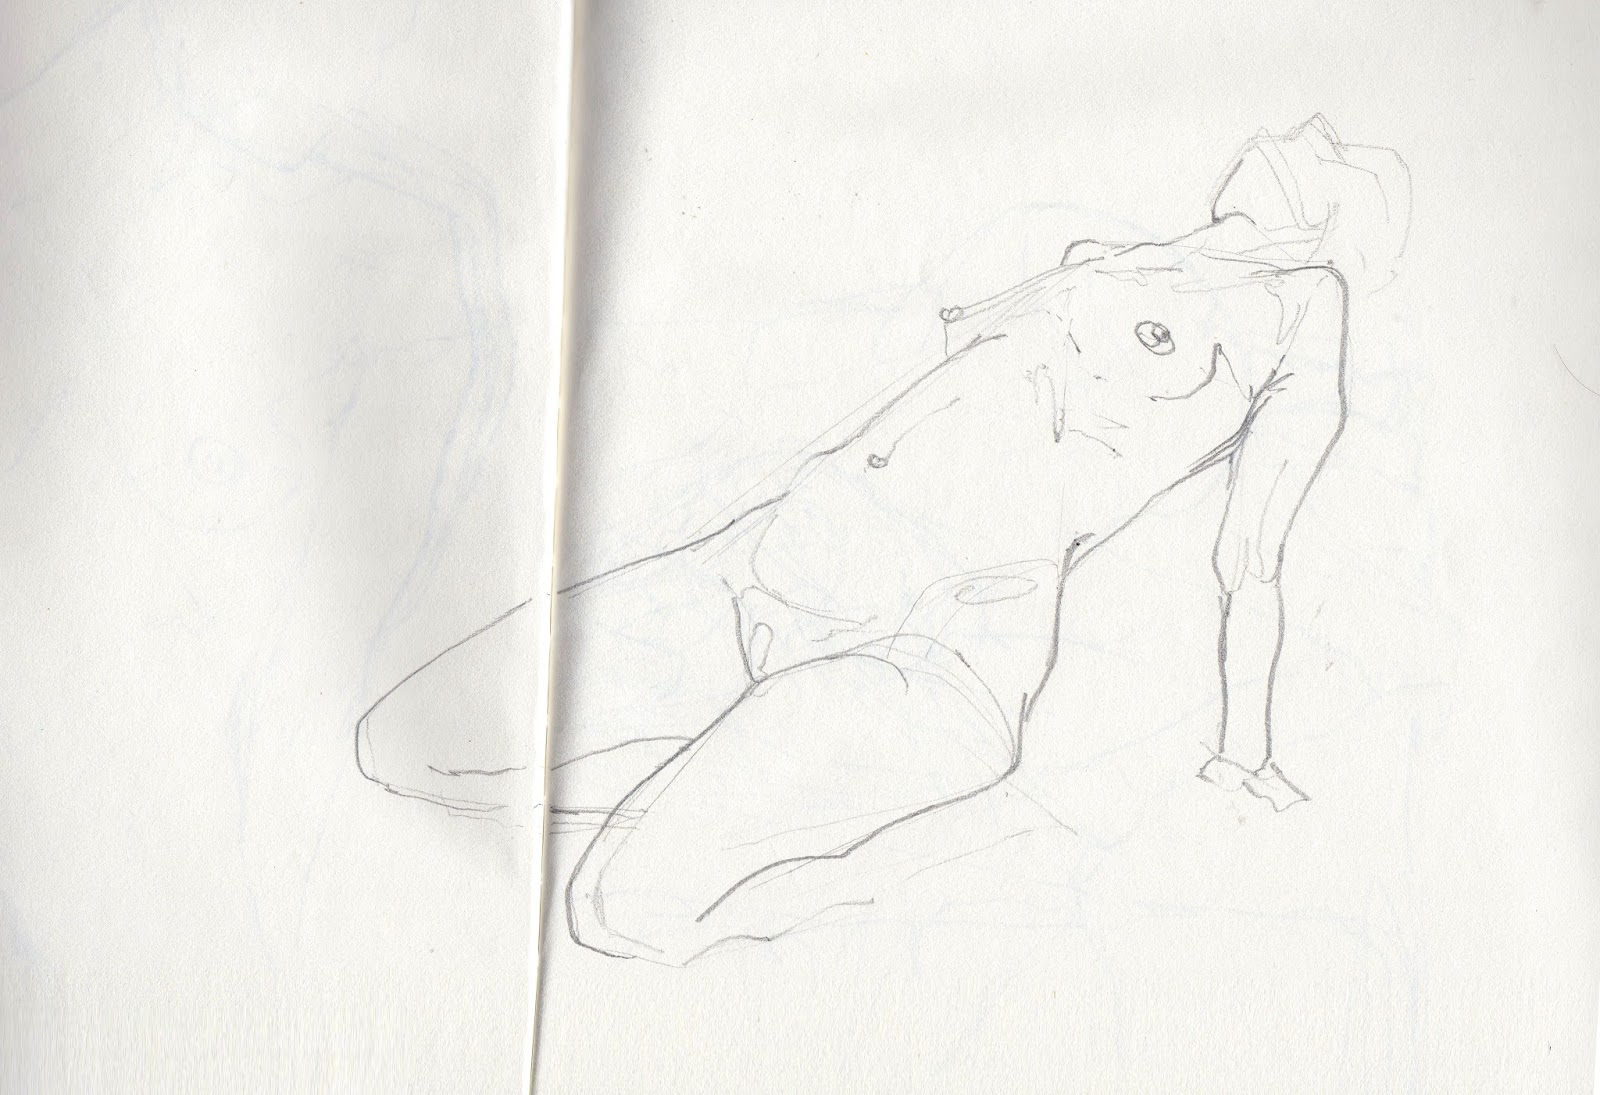 Tingrynade / croquis et recherches  - Page 15 Img15000083